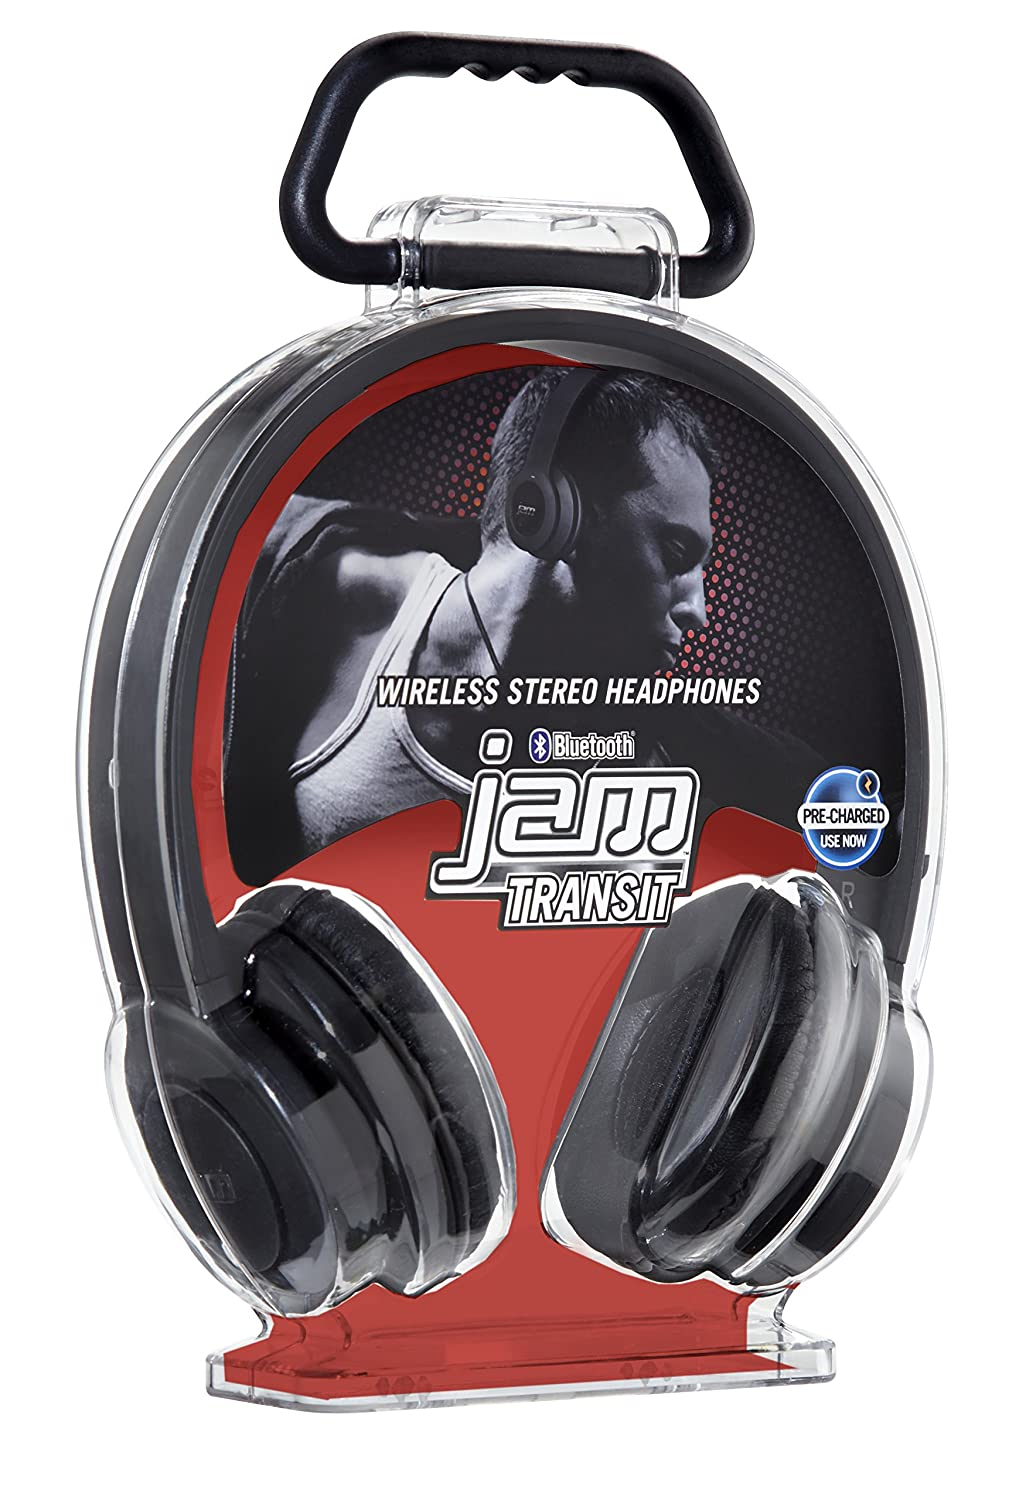 Jam transit bluetooth headphone with microphone black amazon co uk electronics